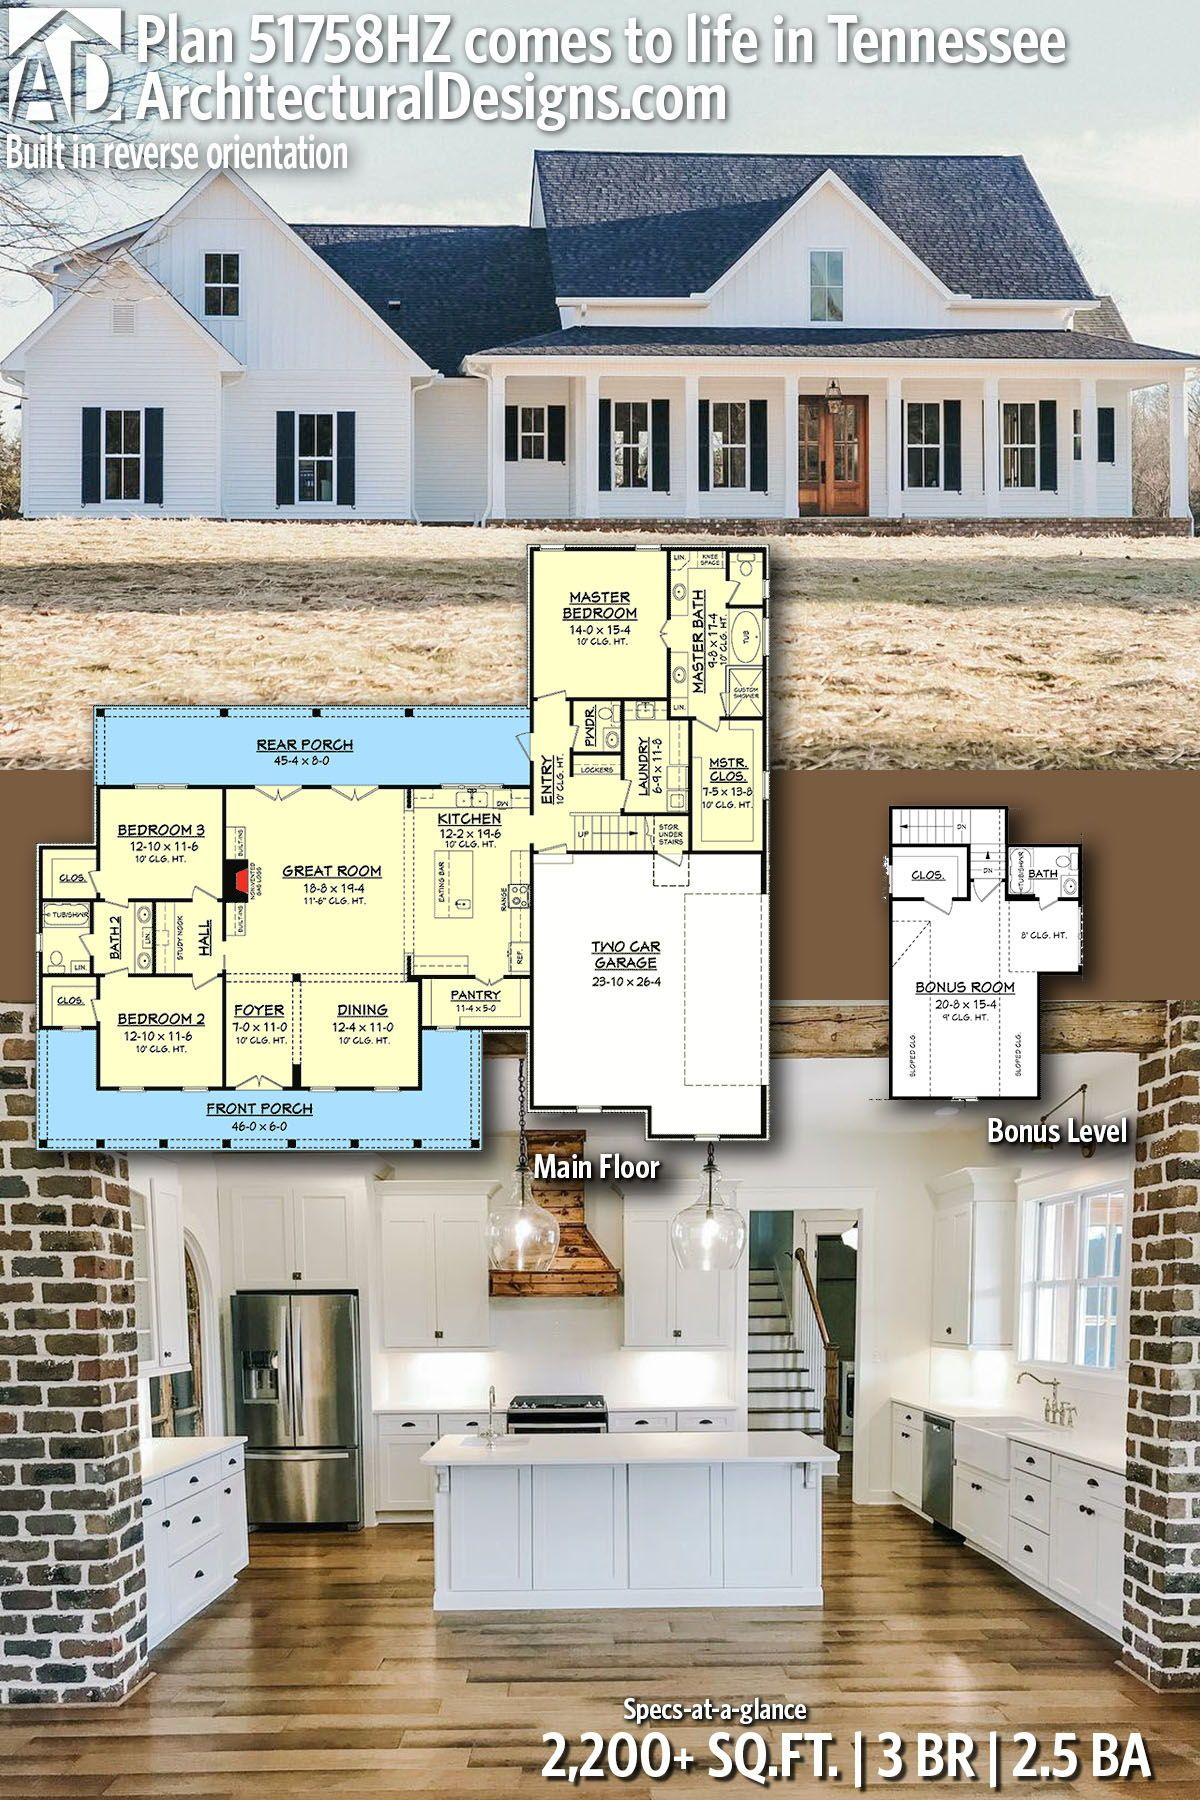 Architectural designs craftsman home plan hz client built in tennessee or bedrooms  baths square feet ready when you are also house plans archdesigns on pinterest rh